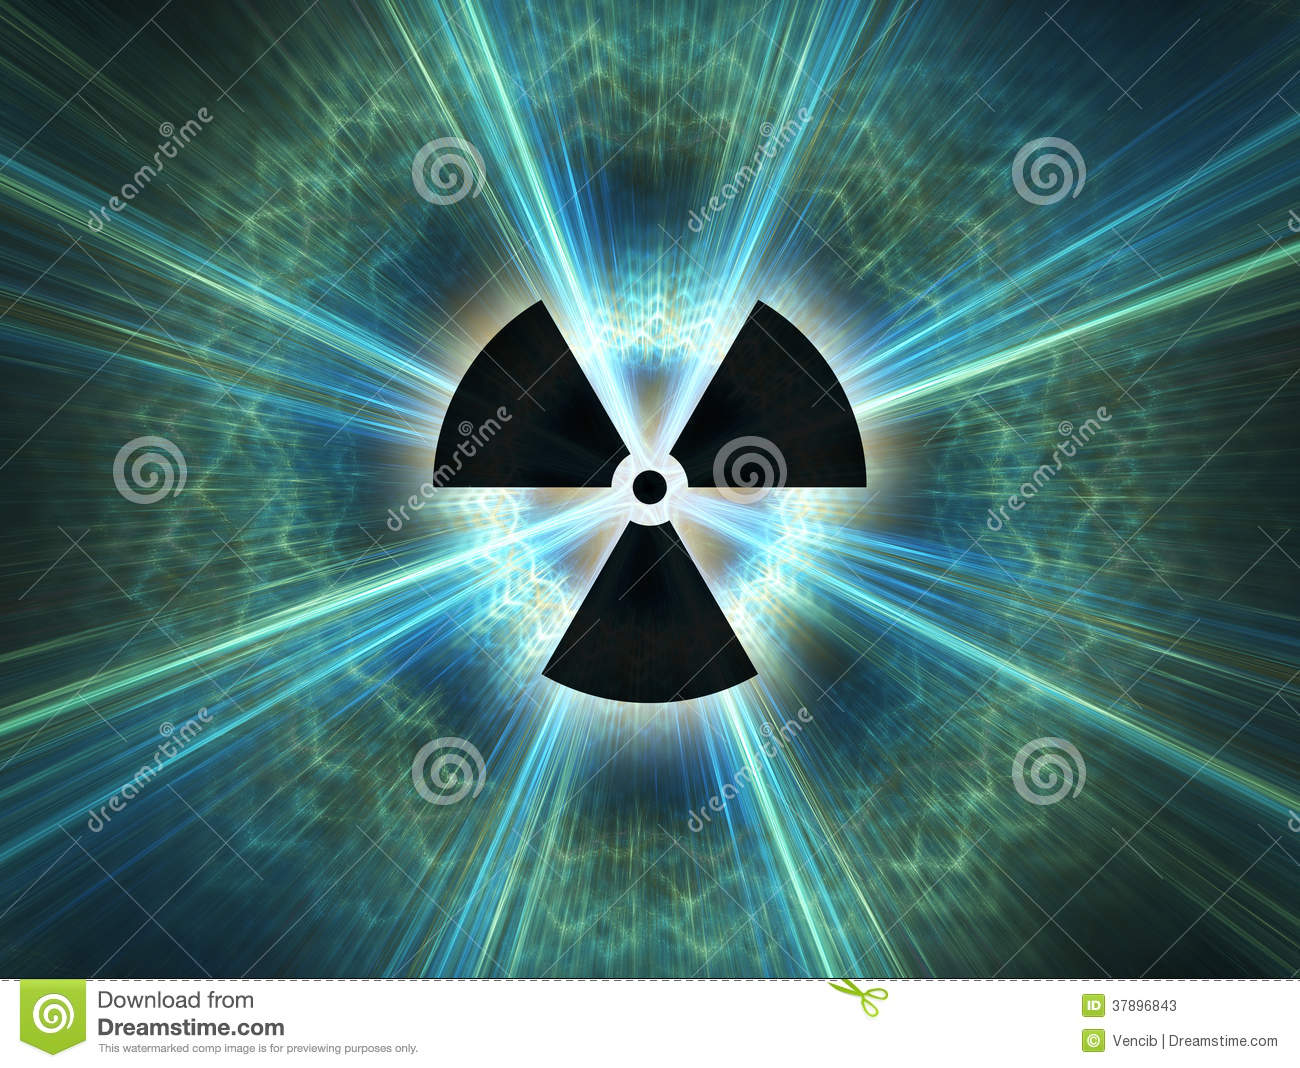 Danger 3d Wallpaper Download Nuclear Radiation Symbol Stock Photos Image 37896843